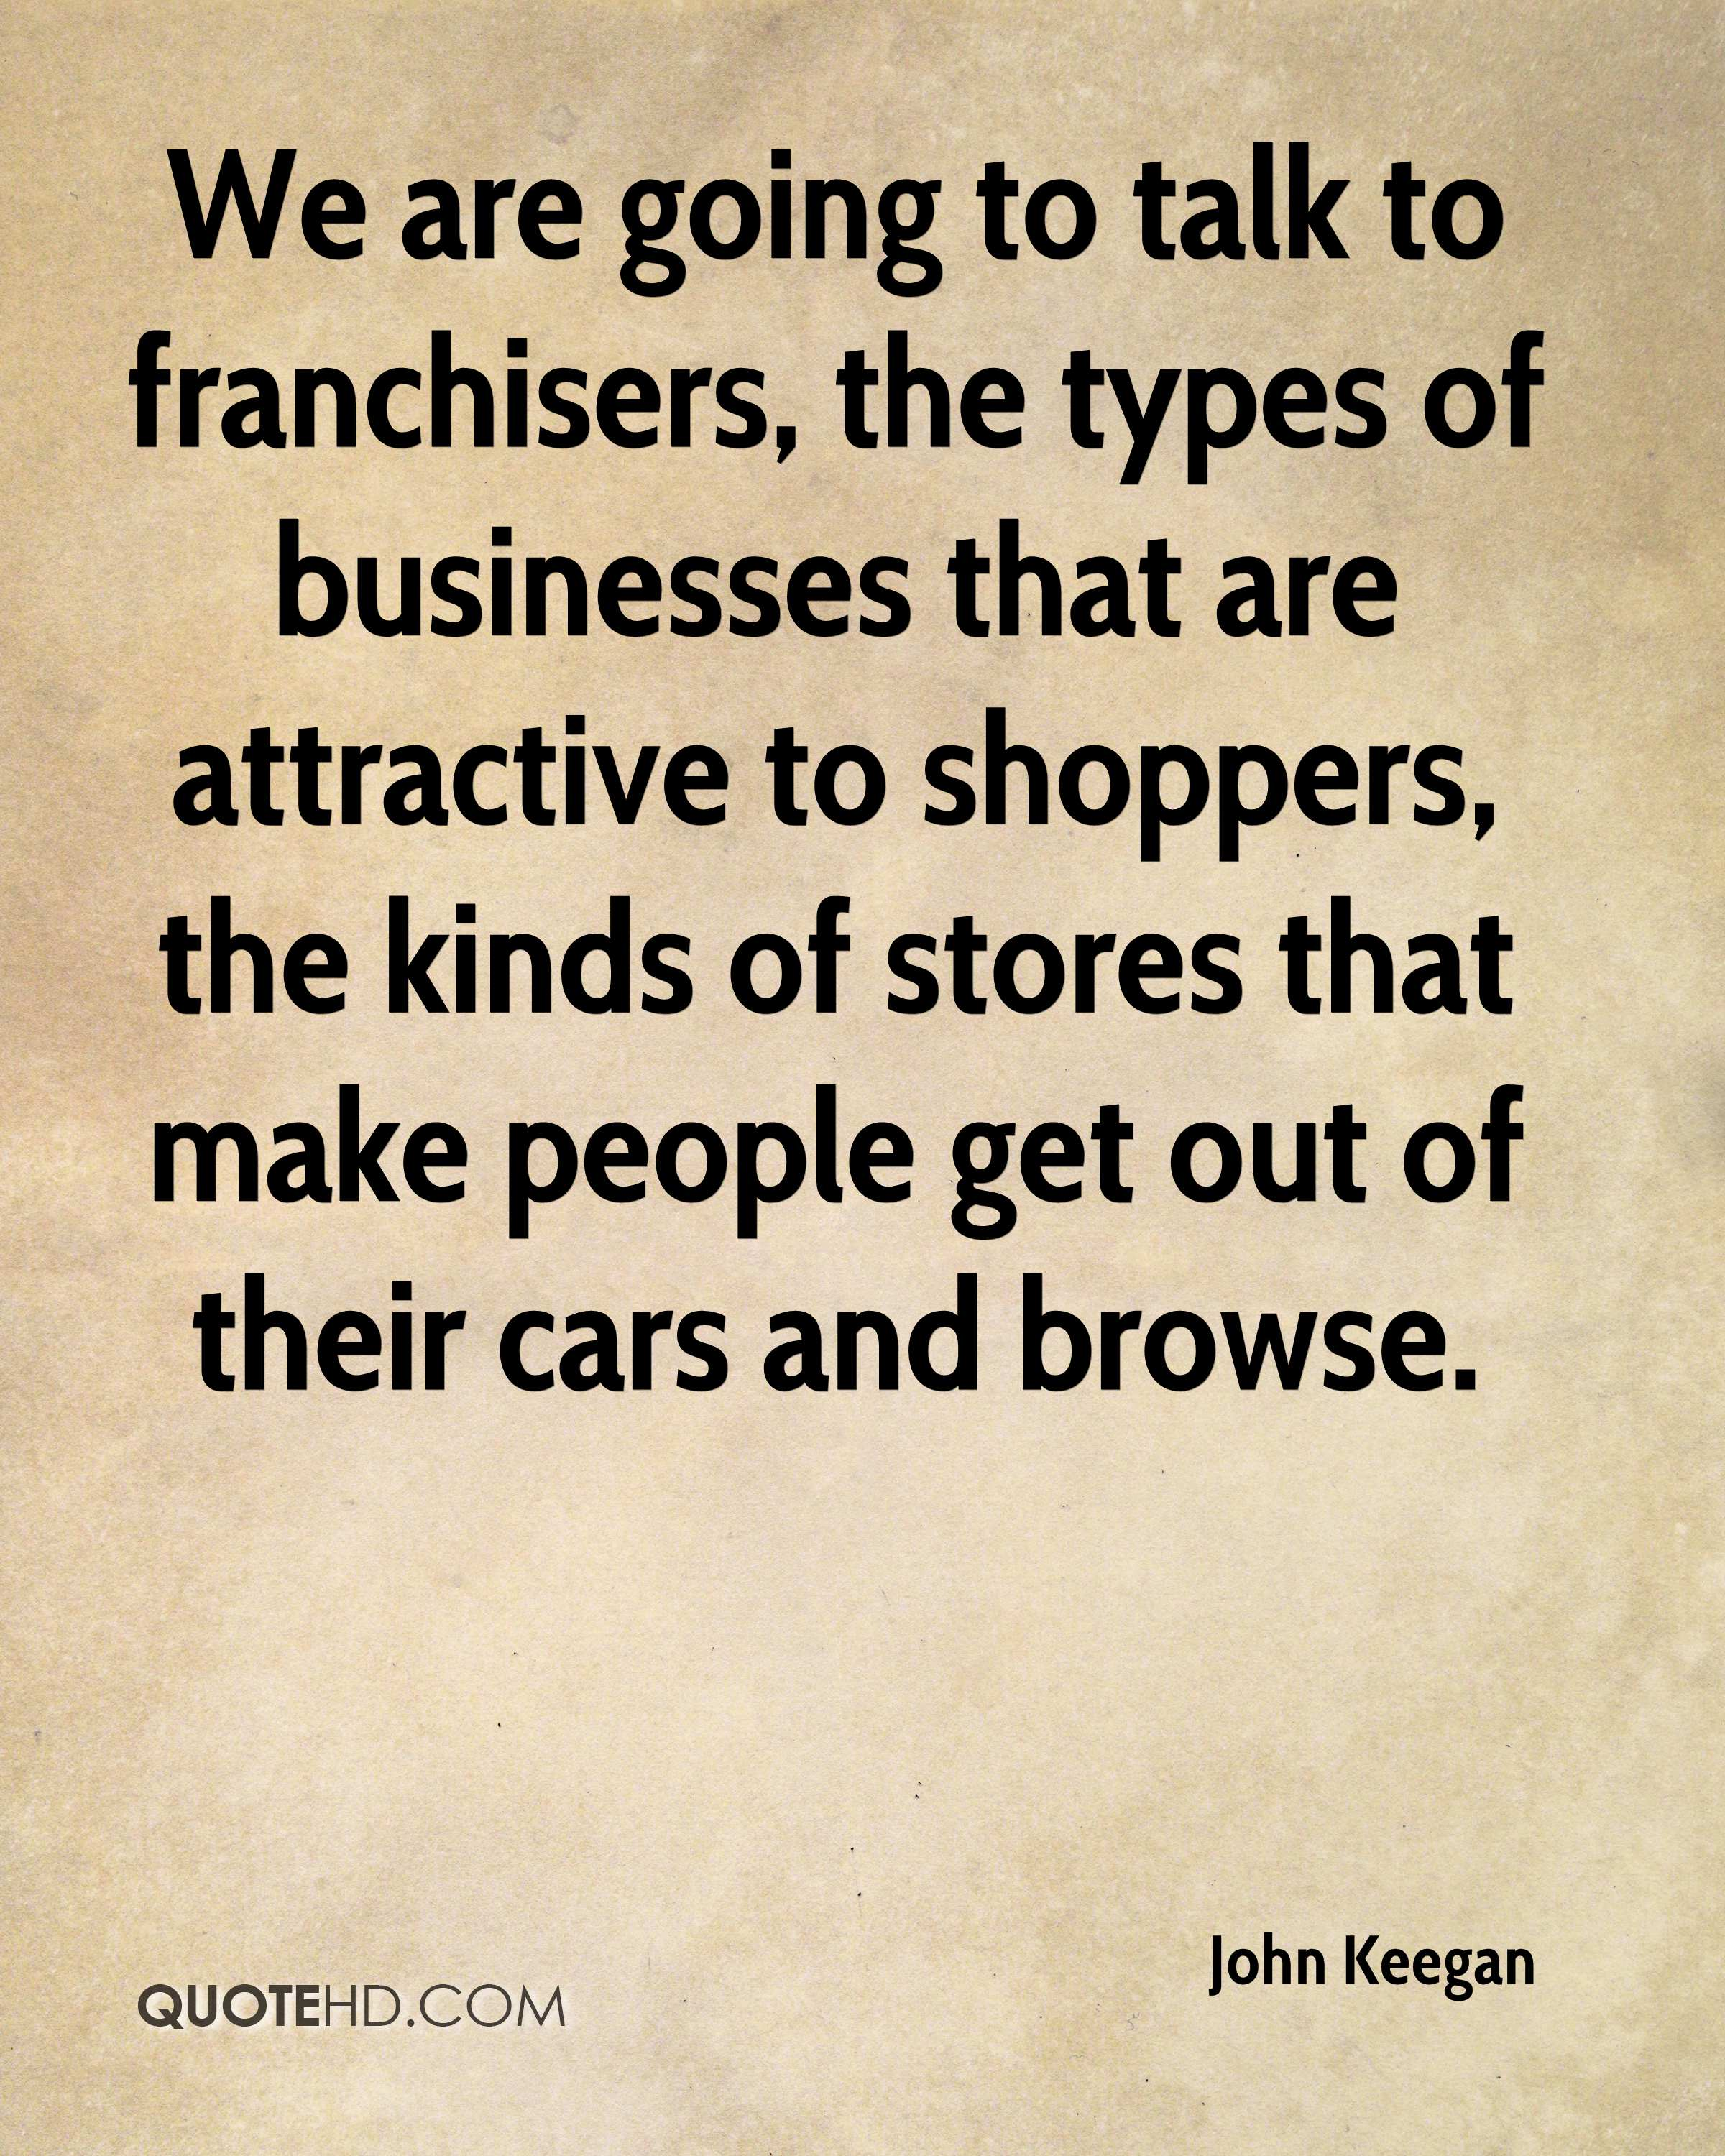 We are going to talk to franchisers, the types of businesses that are attractive to shoppers, the kinds of stores that make people get out of their cars and browse.